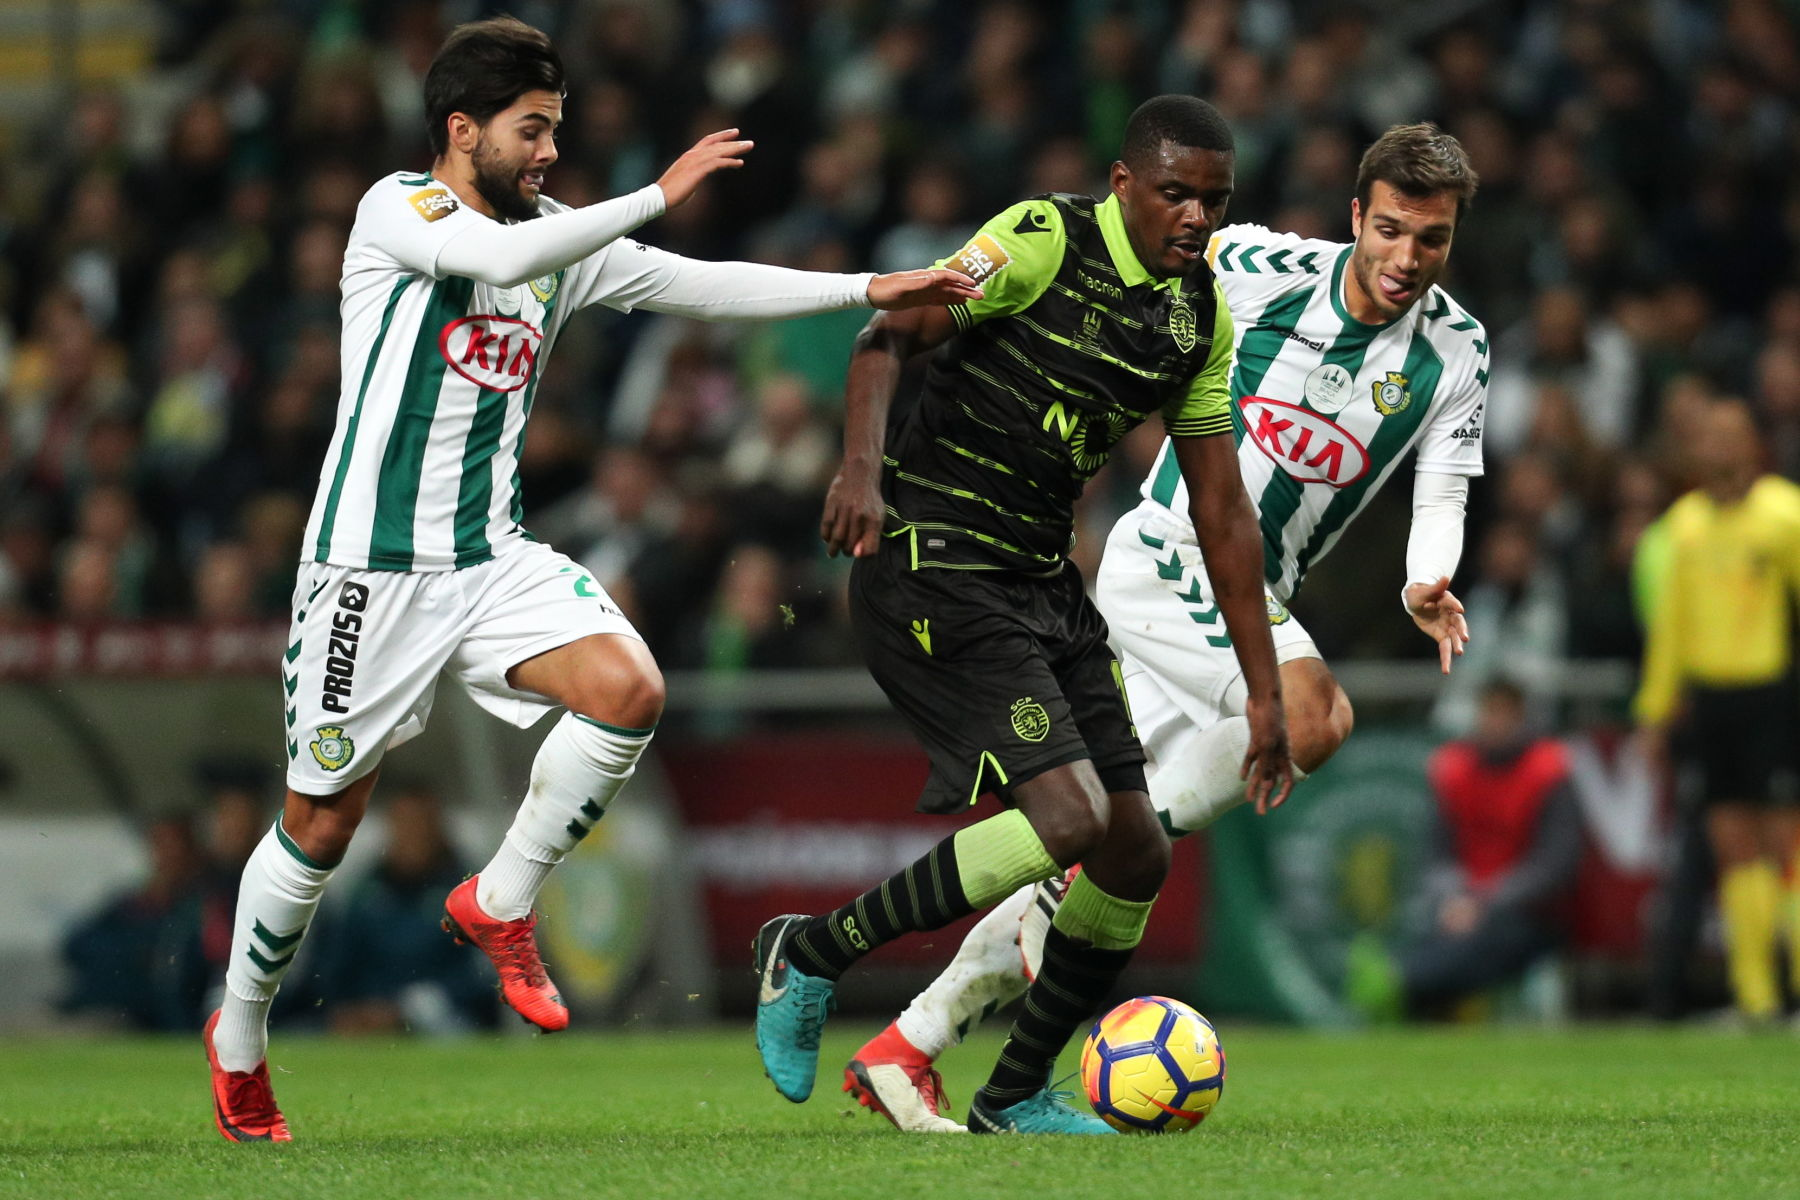 January 27, 2018 - Braga, Braga, Portugal - Sporting's Portuguese midfielder William Carvalho (C) in action with Setubal's Portuguese forward Joao Amaral (L) and Setubal's Portuguese midfielder Tomas Podstawski (R) during the Portuguese League Cup 2017/18 Final, match between Vitoria FC and Sporting CP, at Municipal de Braga Stadium in Braga on January 27, 2018. (Credit Image: © Dpi/NurPhoto via ZUMA Press) PUCHAR LIGI PORTUGALSKIEJ PILKA NOZNA SEZON 2017/2018 FOT.ZUMA/NEWSPIX.PL POLAND ONLY!!! --- Newspix.pl *** Local Caption *** www.newspix.pl mail us: info@newspix.pl call us: 0048 022 23 22 222 --- Polish Picture Agency by Ringier Axel Springer Poland